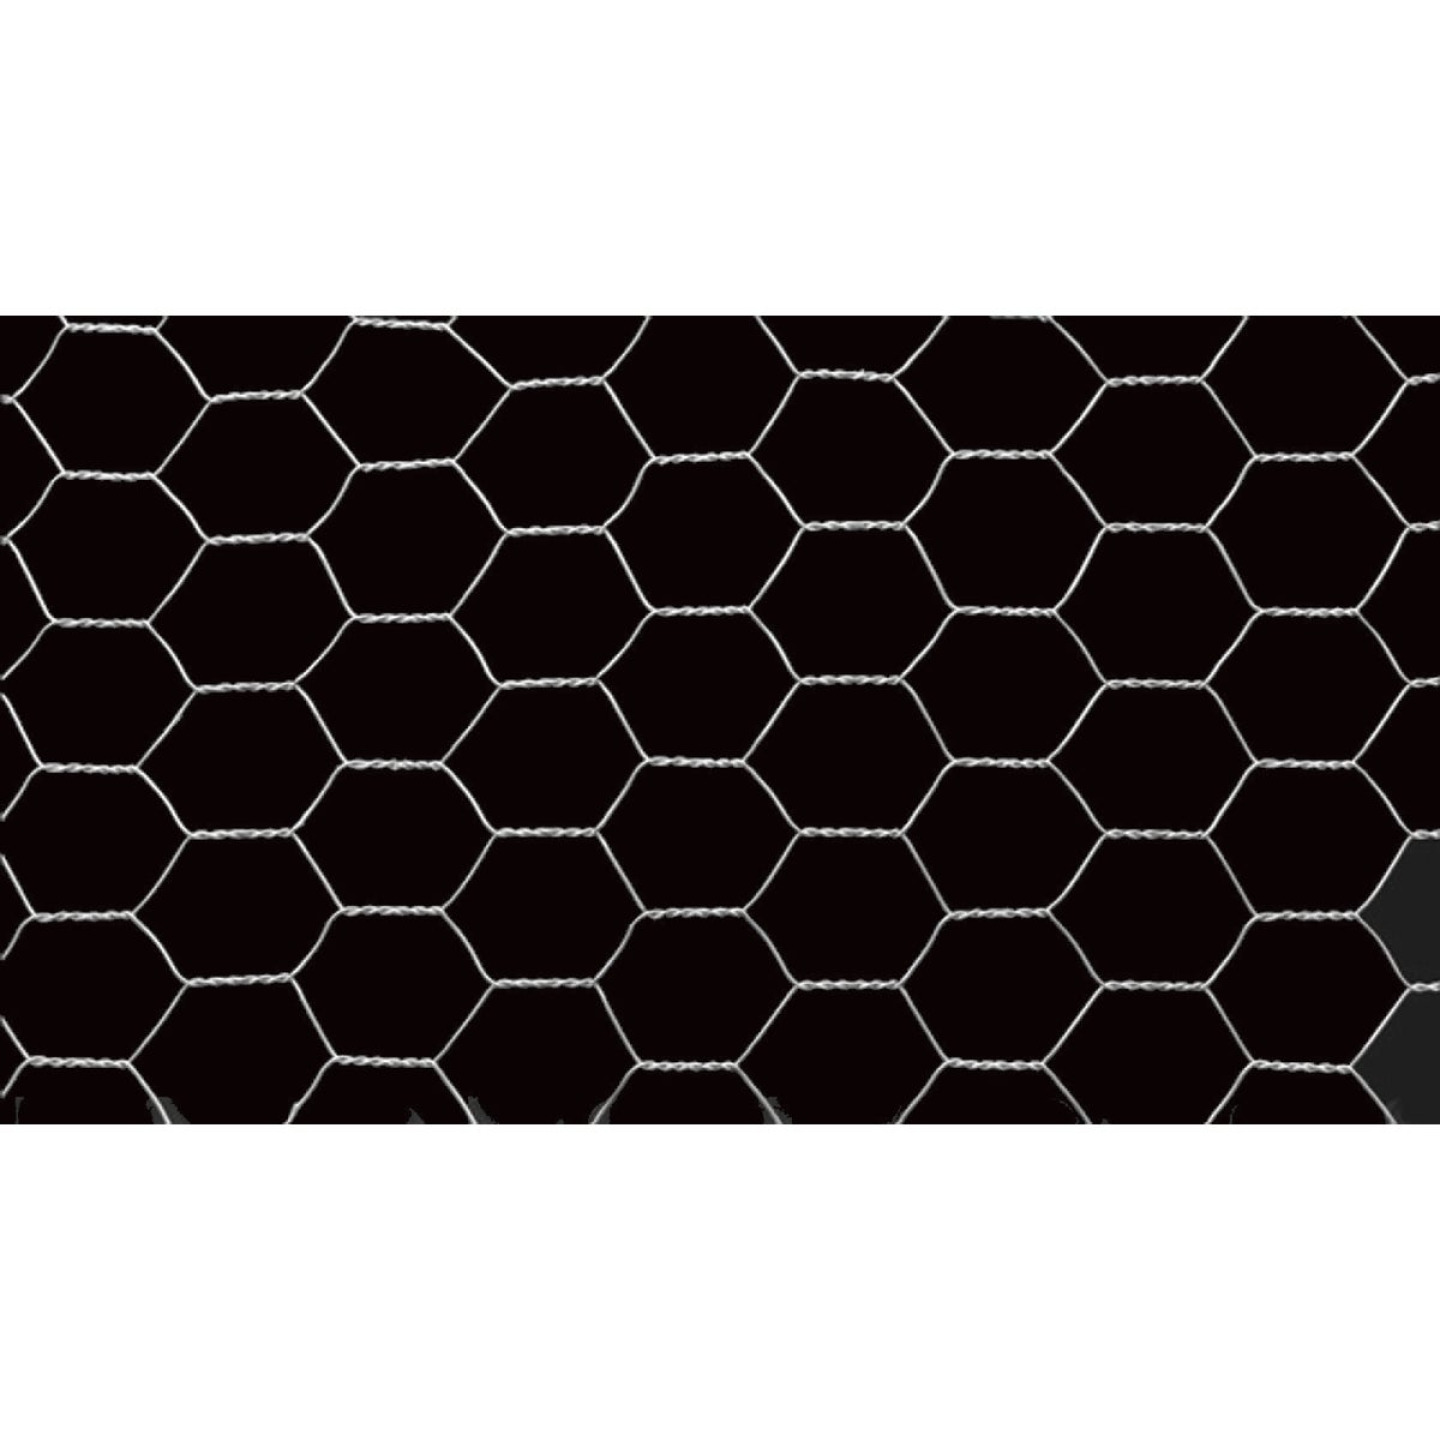 Do it 1 In. x 48 In. H. x 150 Ft. L. Hexagonal Wire Poultry Netting Image 3